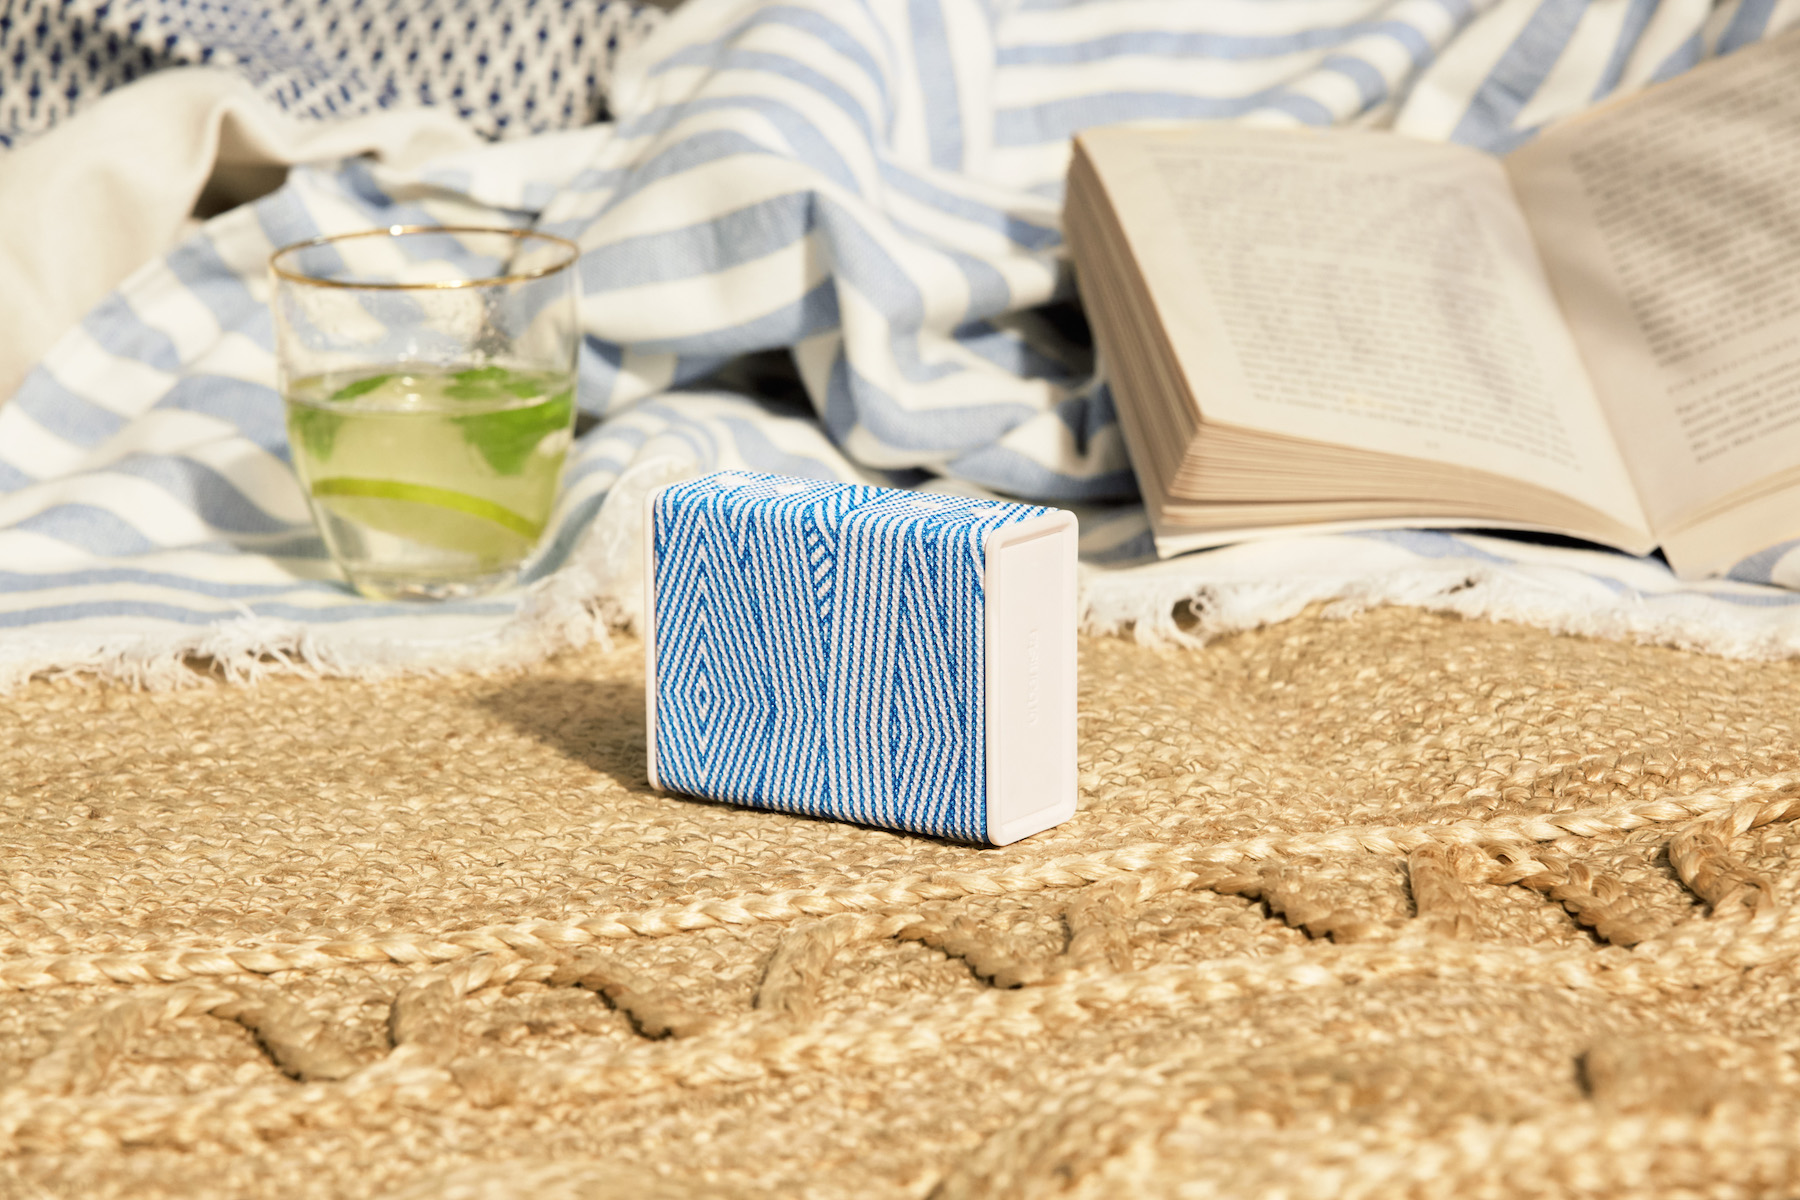 H&M Home join forces with Urbanista for New Speaker